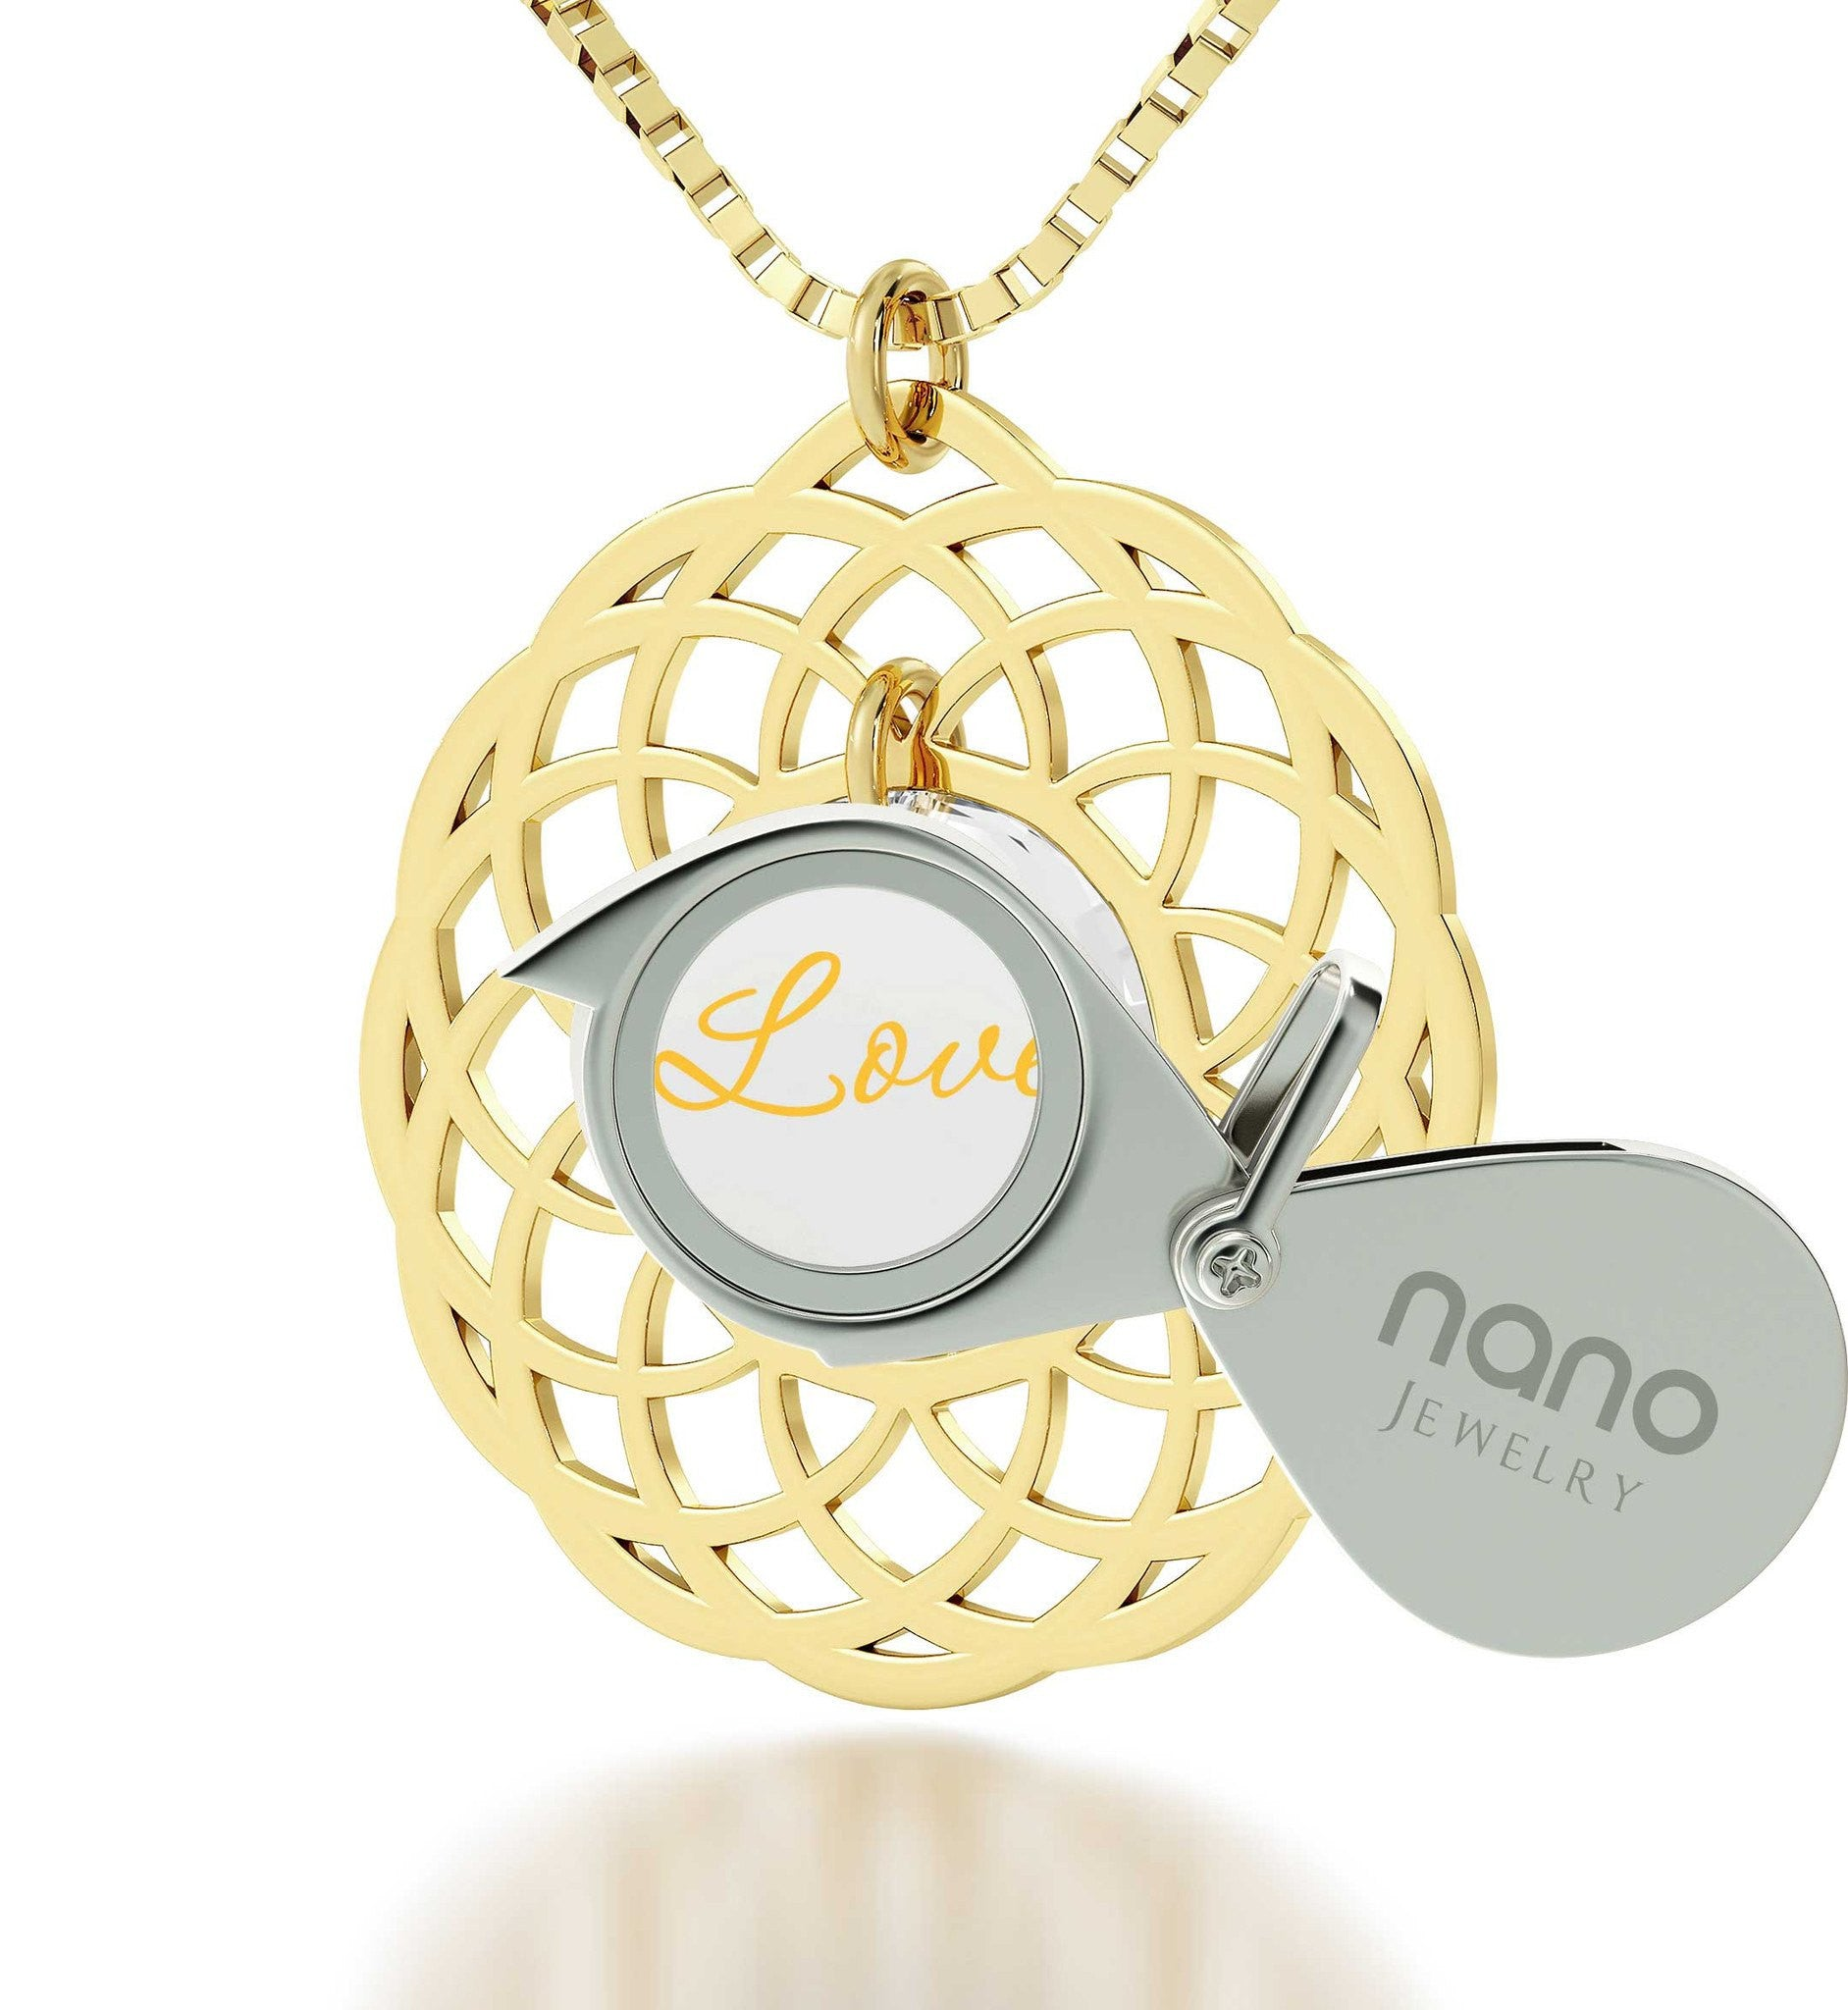 Top Womens Gifts, 24k Engraved Pendant, Girl Birthday Presents, Nano Jewelry